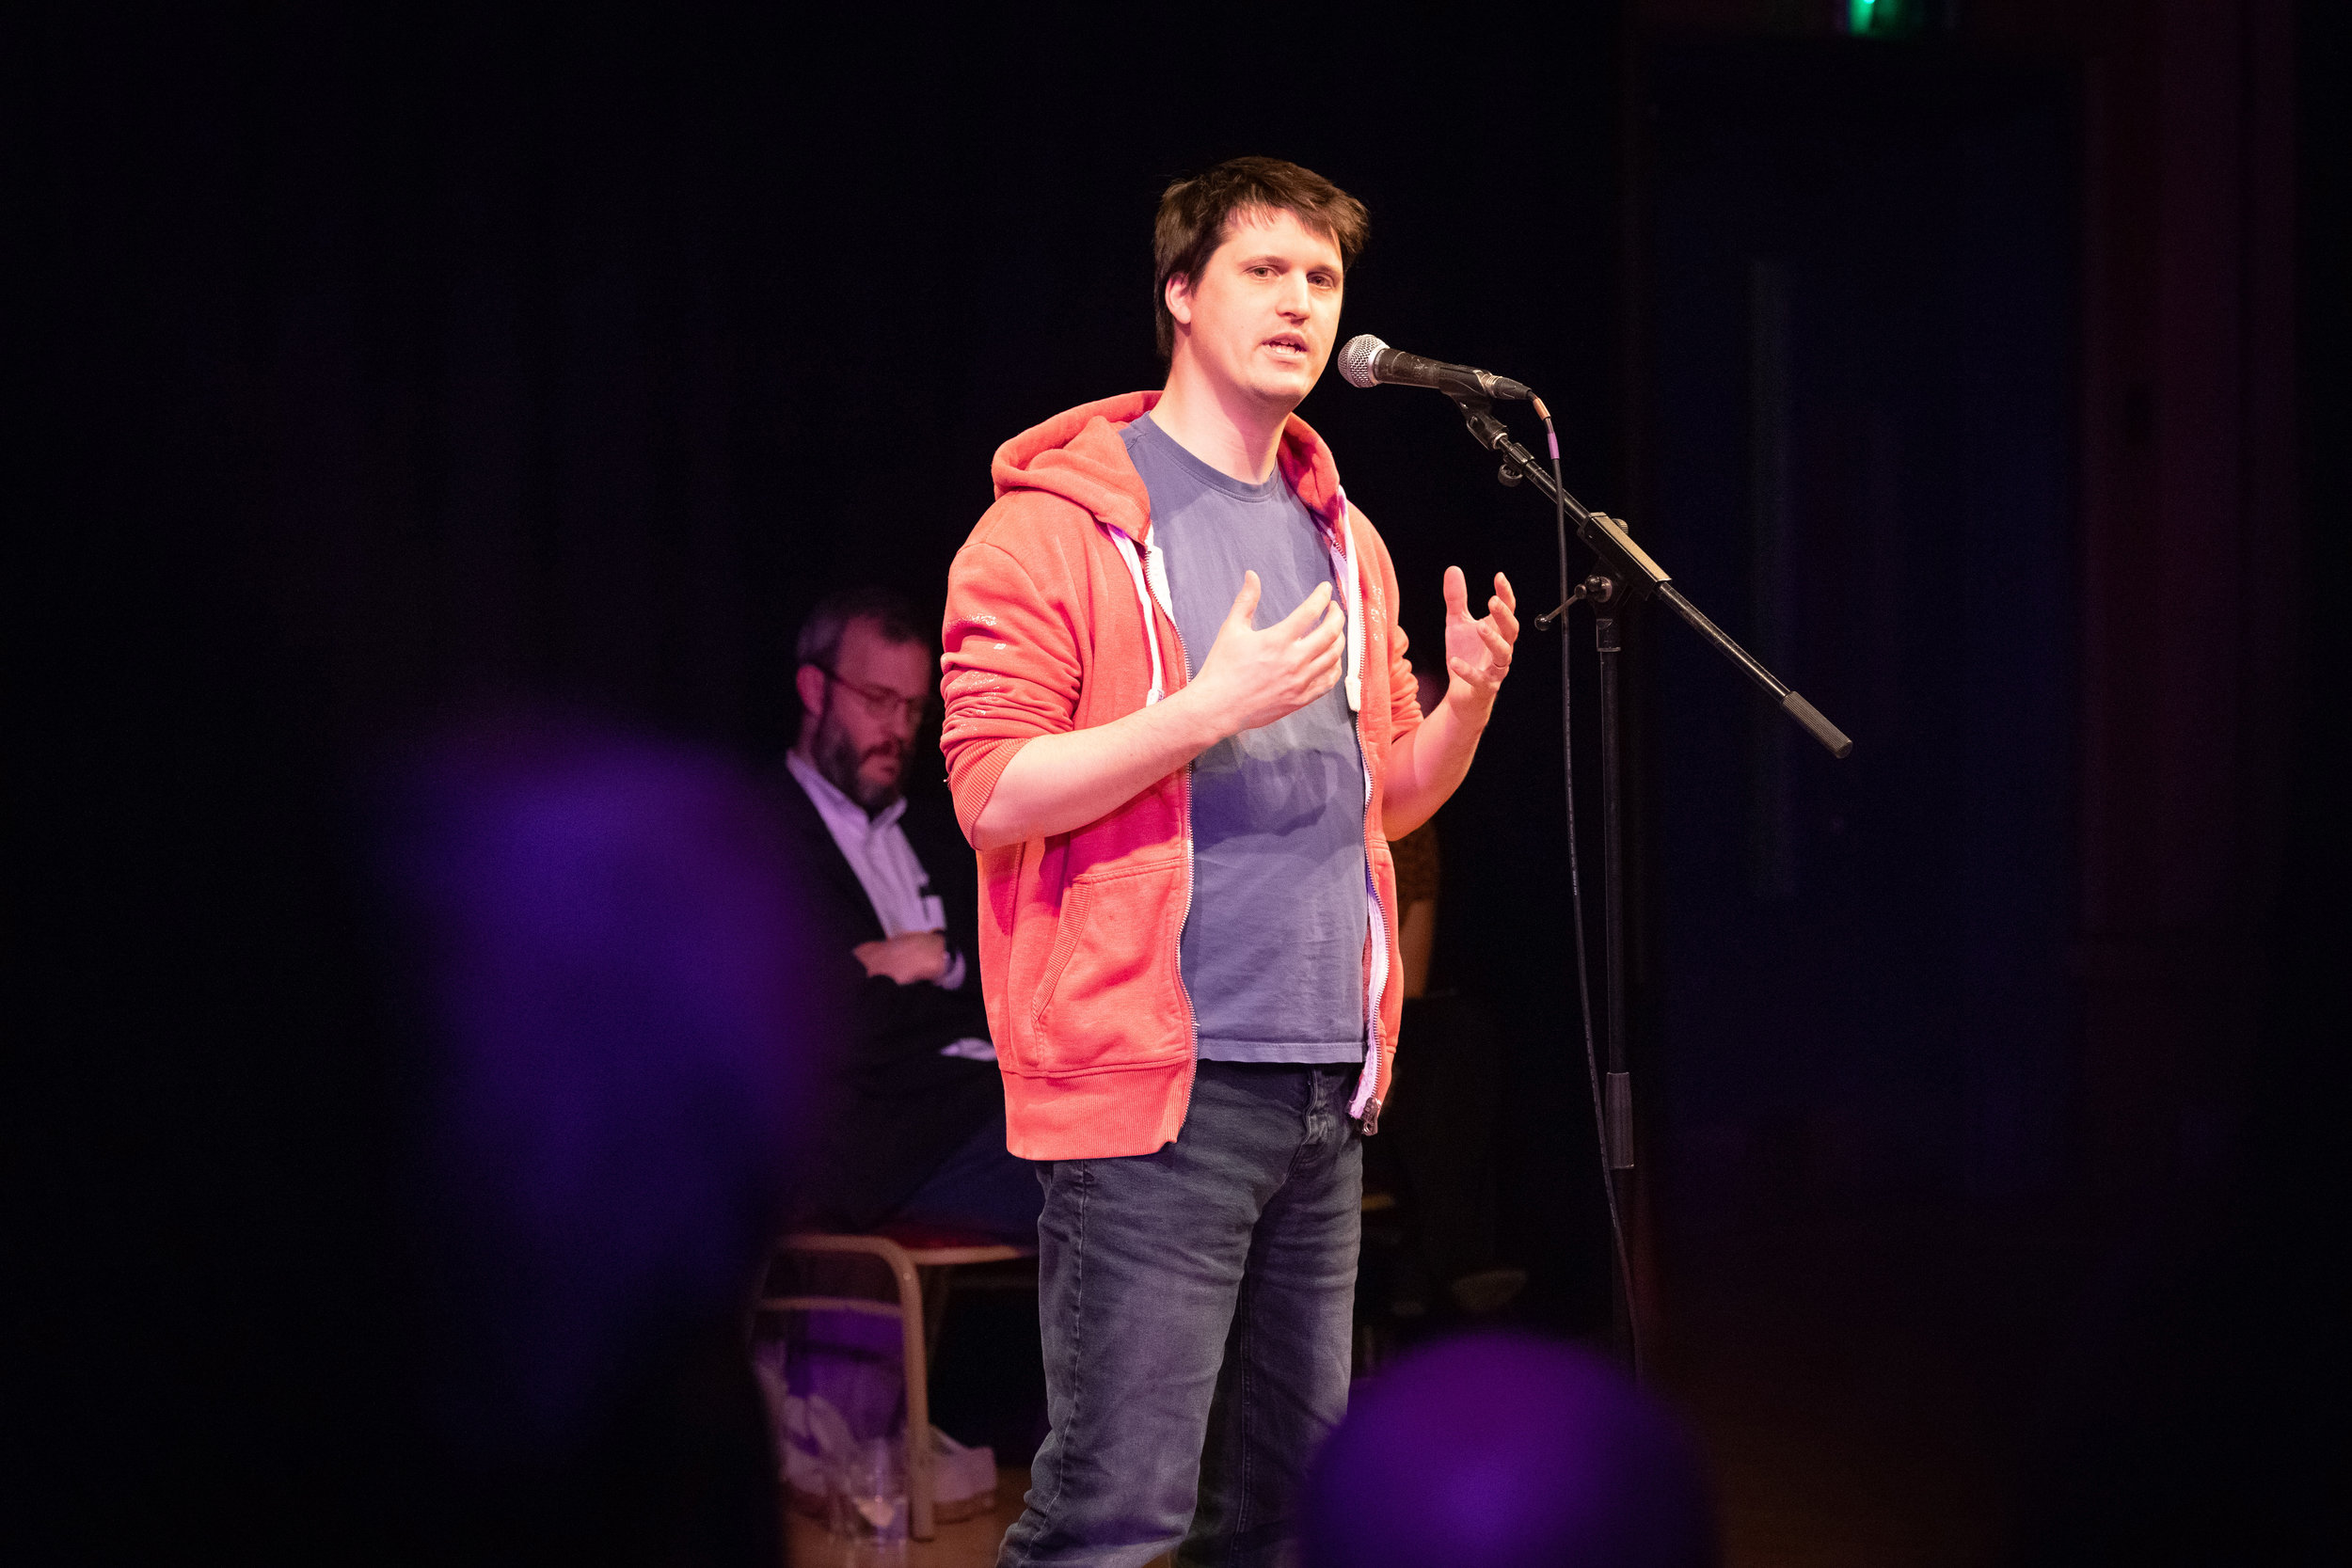 Andrew Holding shares his story with the Story Collider audience at J3 at Cambridge Junction in Cambridge, UK in February 2019. Photo by Mark Danson.